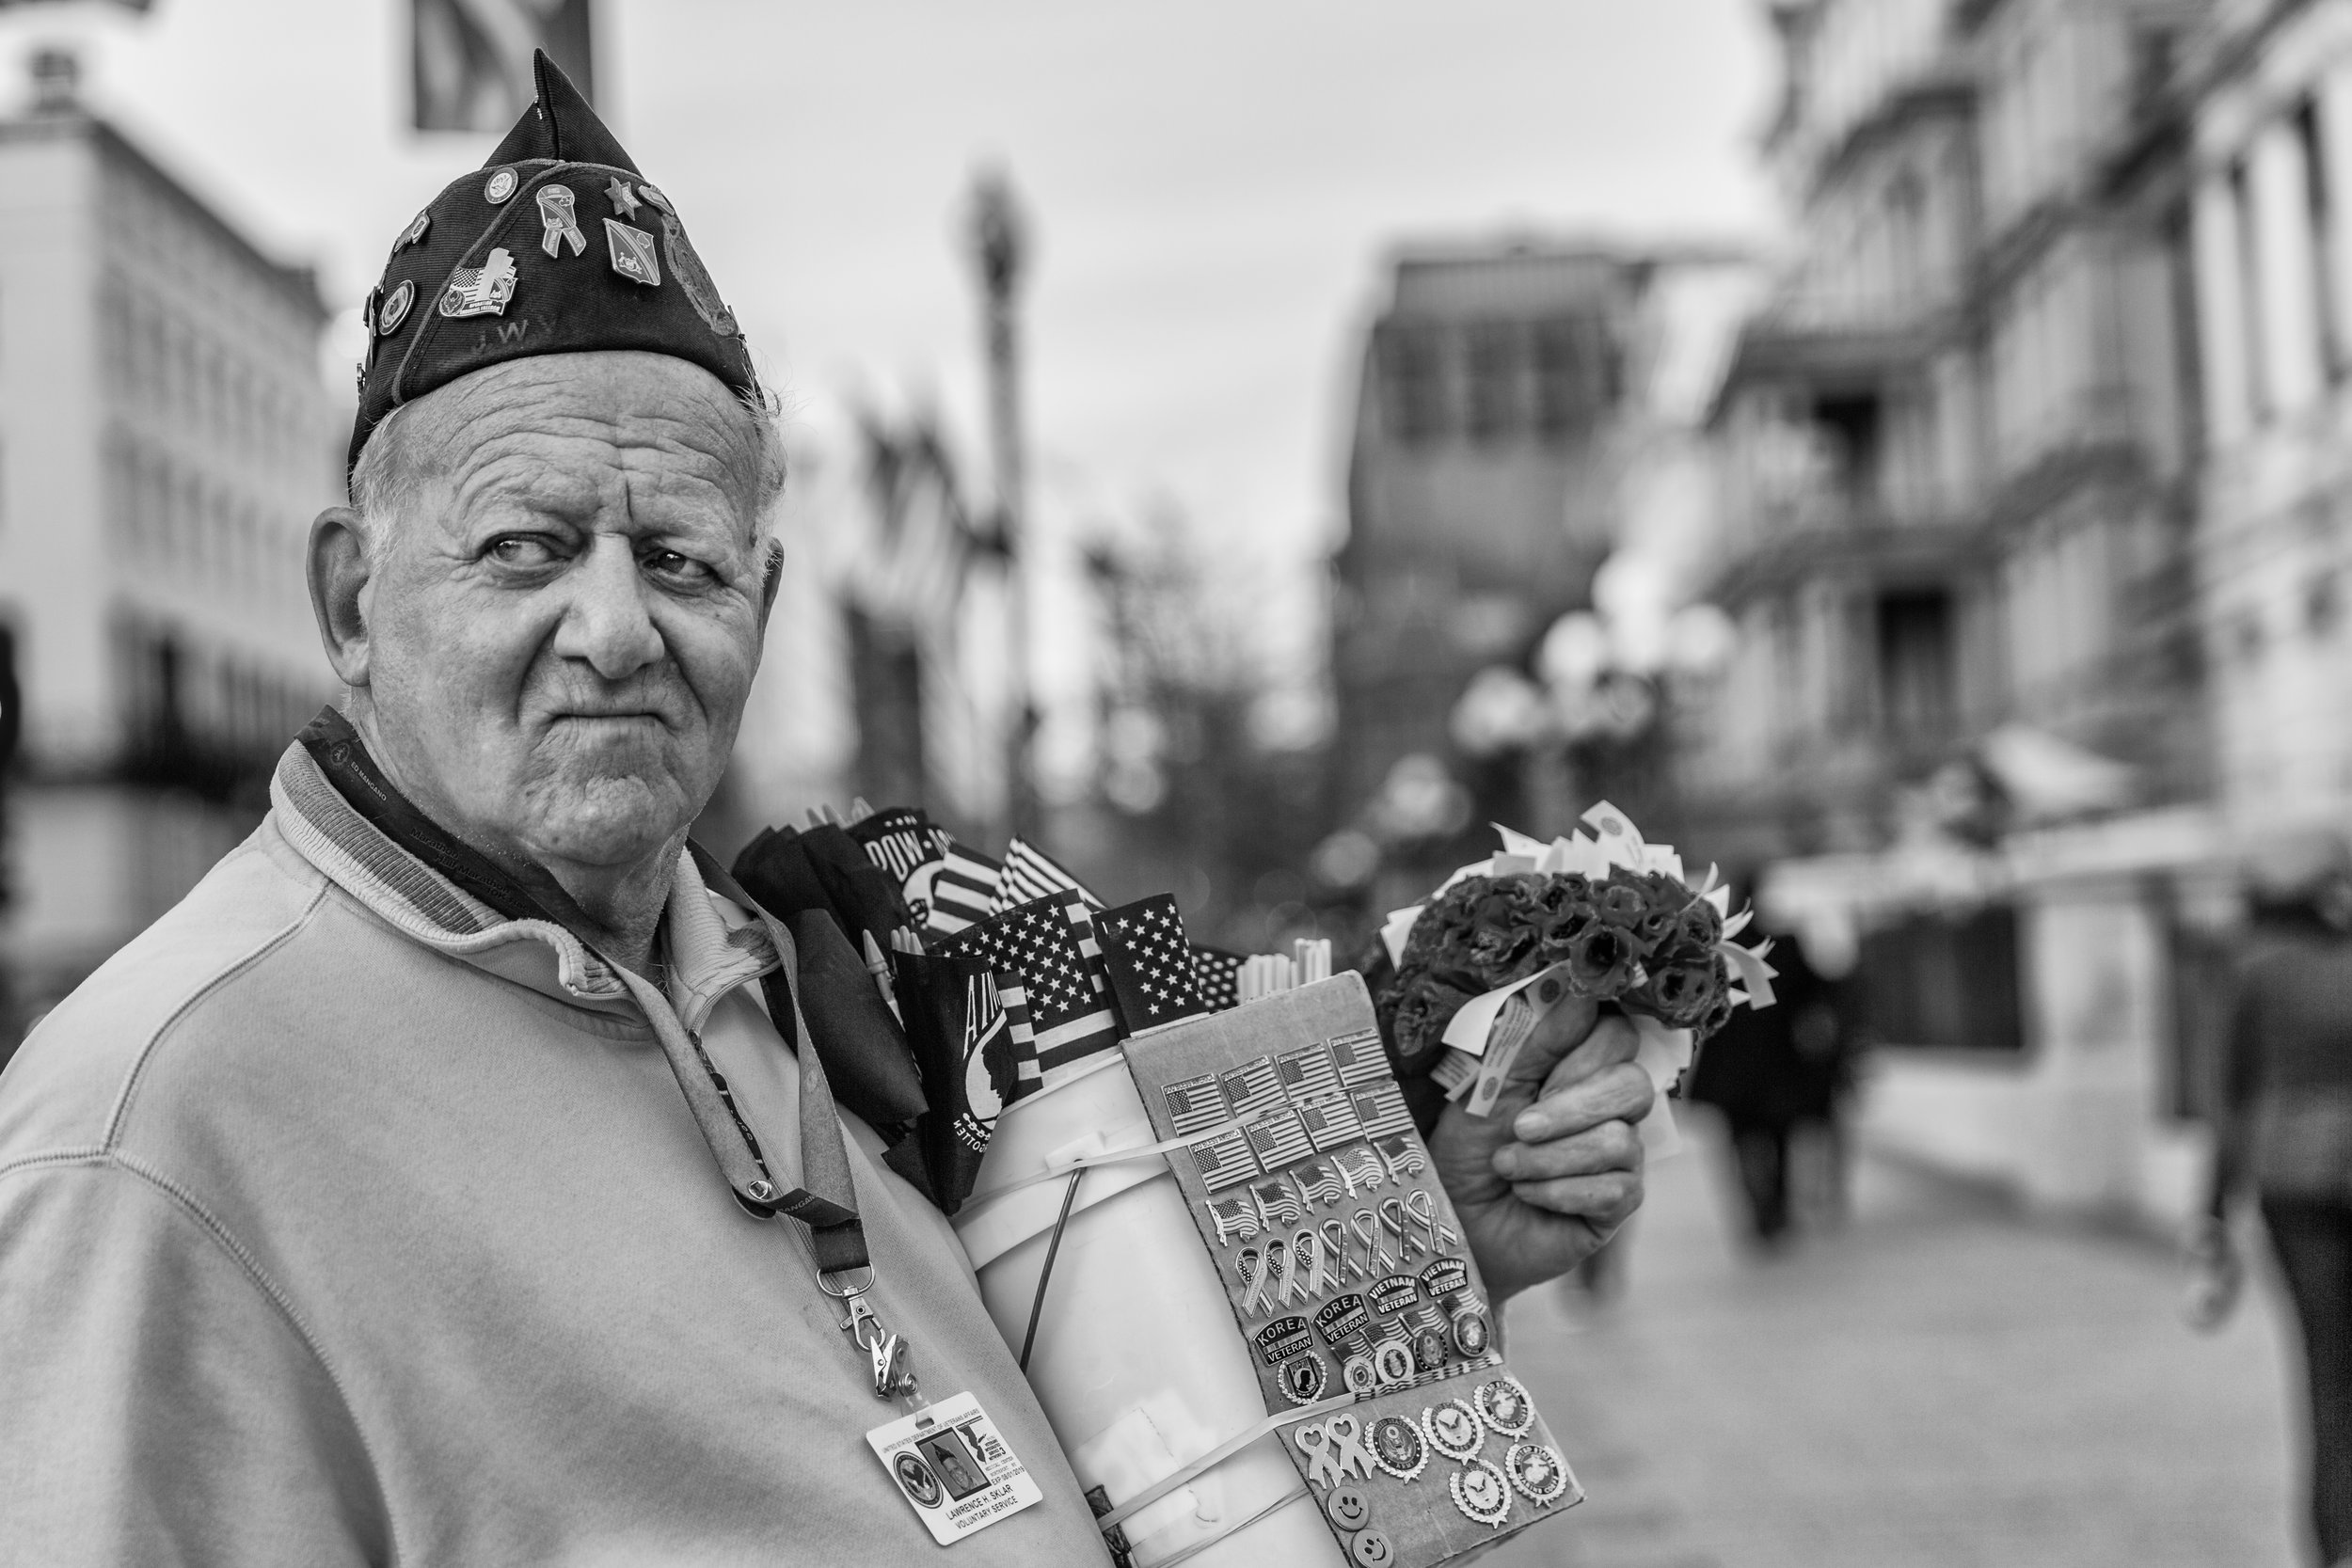 A Veteran sells pins & flags near the White House on the day before Donald Trump's Inauguration